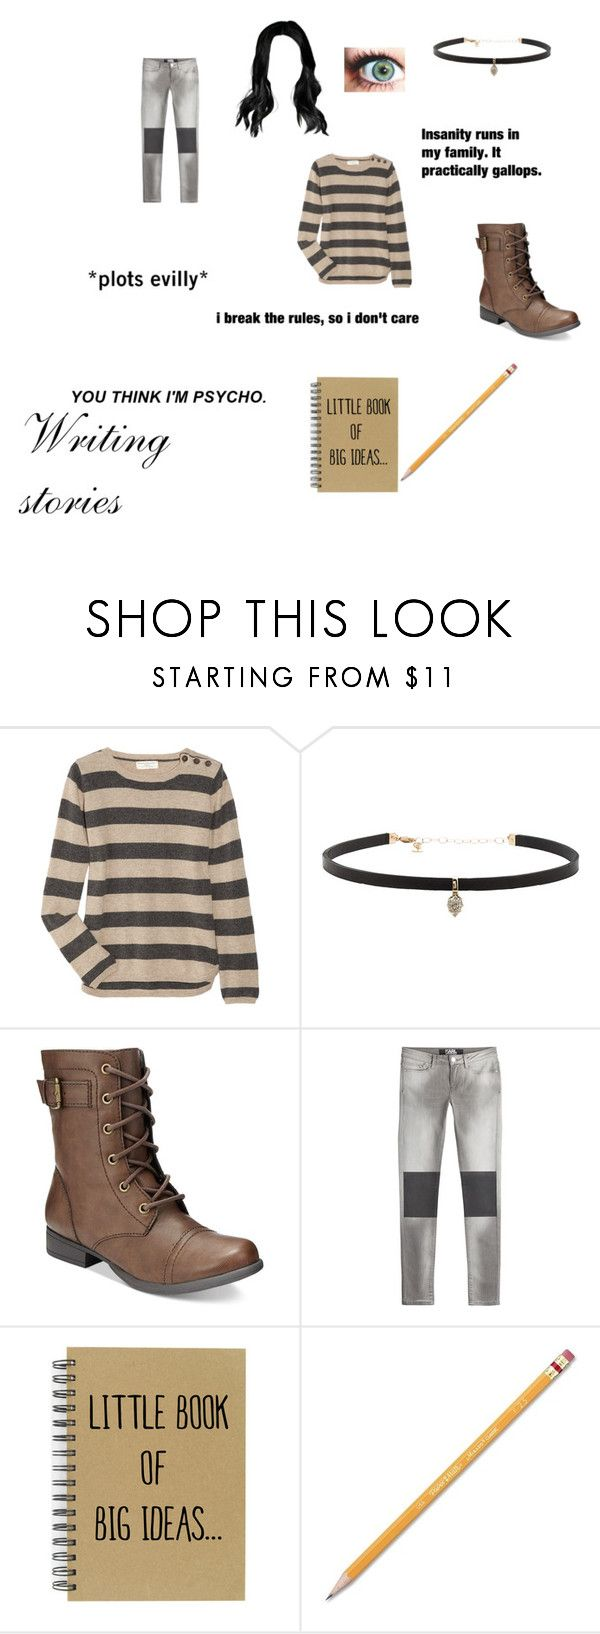 """""""Writing stories"""" by i-love-cake3 ❤ liked on Polyvore featuring Chinti and Parker, Carbon & Hyde, American Rag Cie, Karl Lagerfeld, E.vil and Paper Mate"""